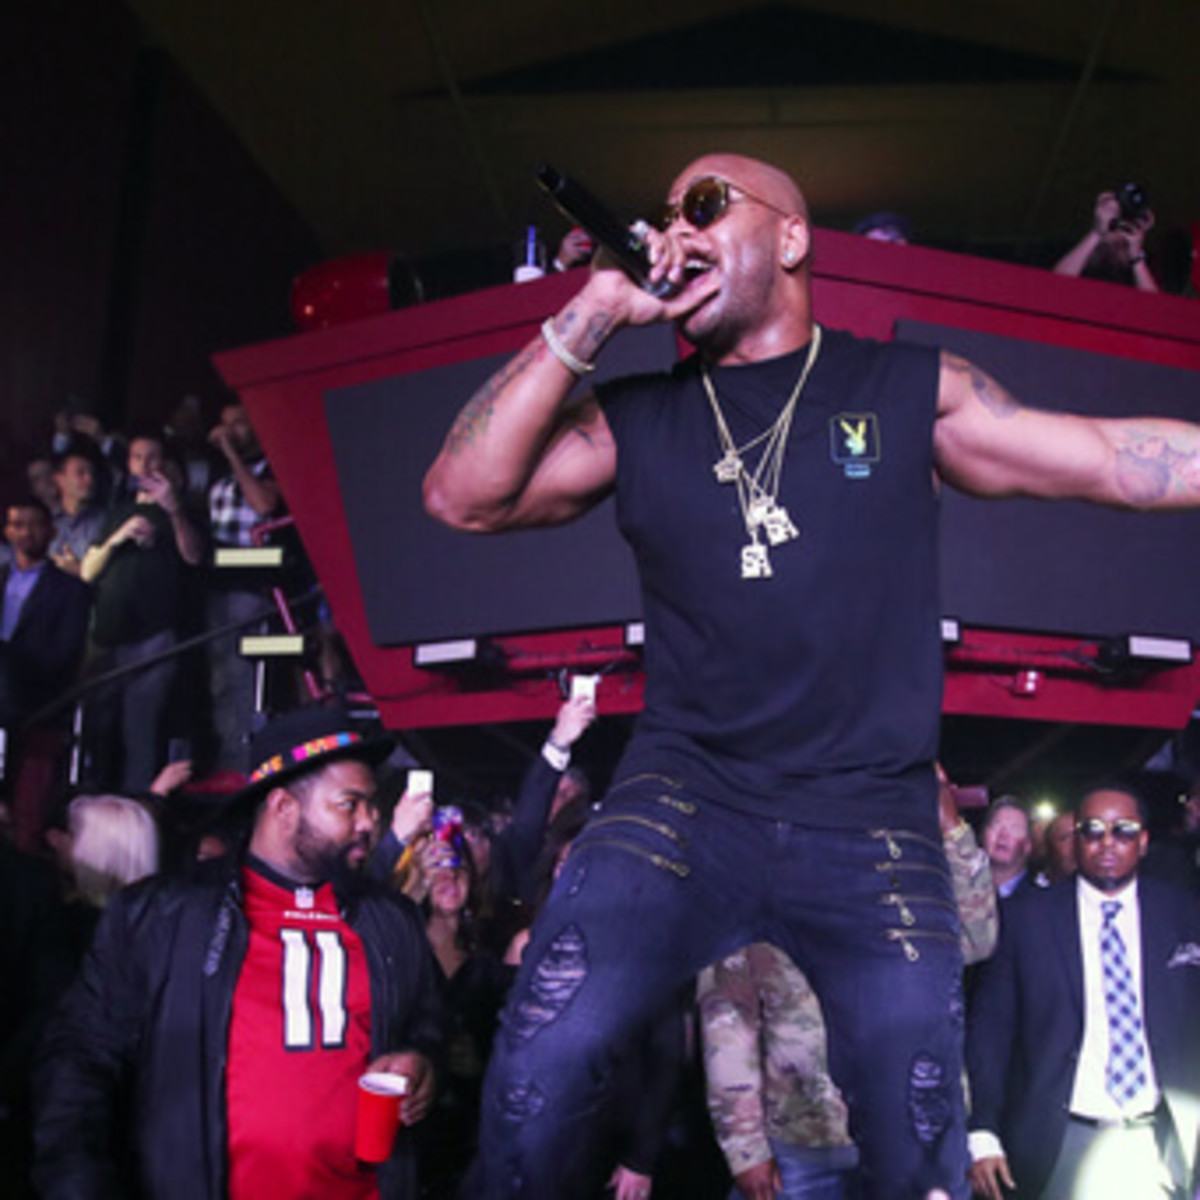 Recording artist Flo Rida performs onstage during the Playboy party